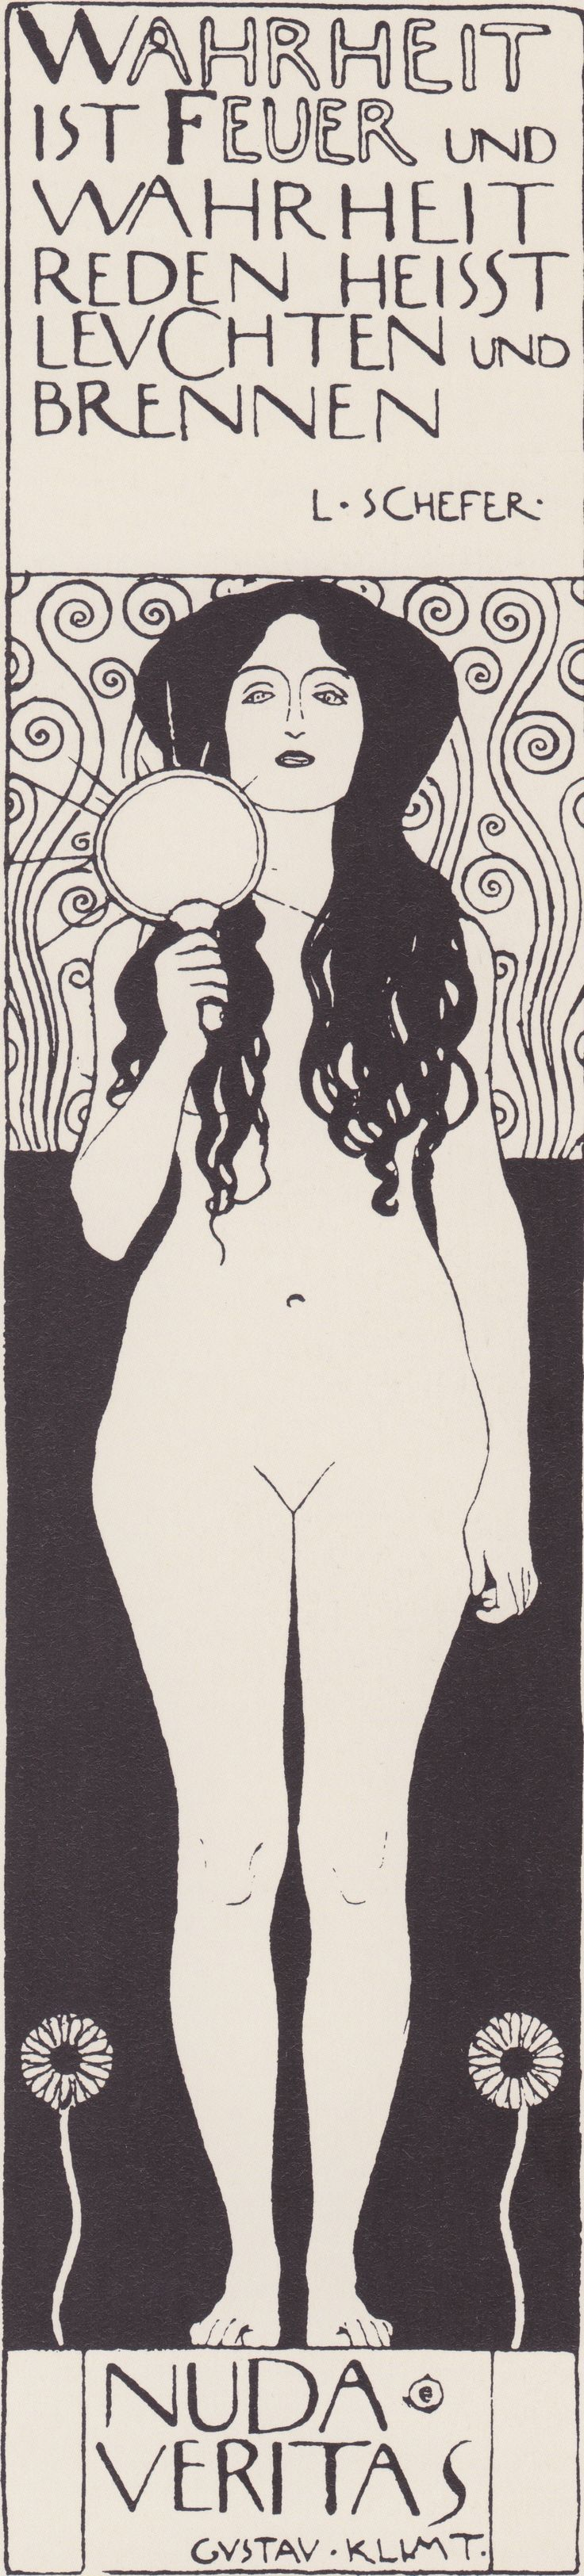 Nuda Veritas, Gustav Klimt Caption reads: Truth is fire and speaking the truth means shining and burning.